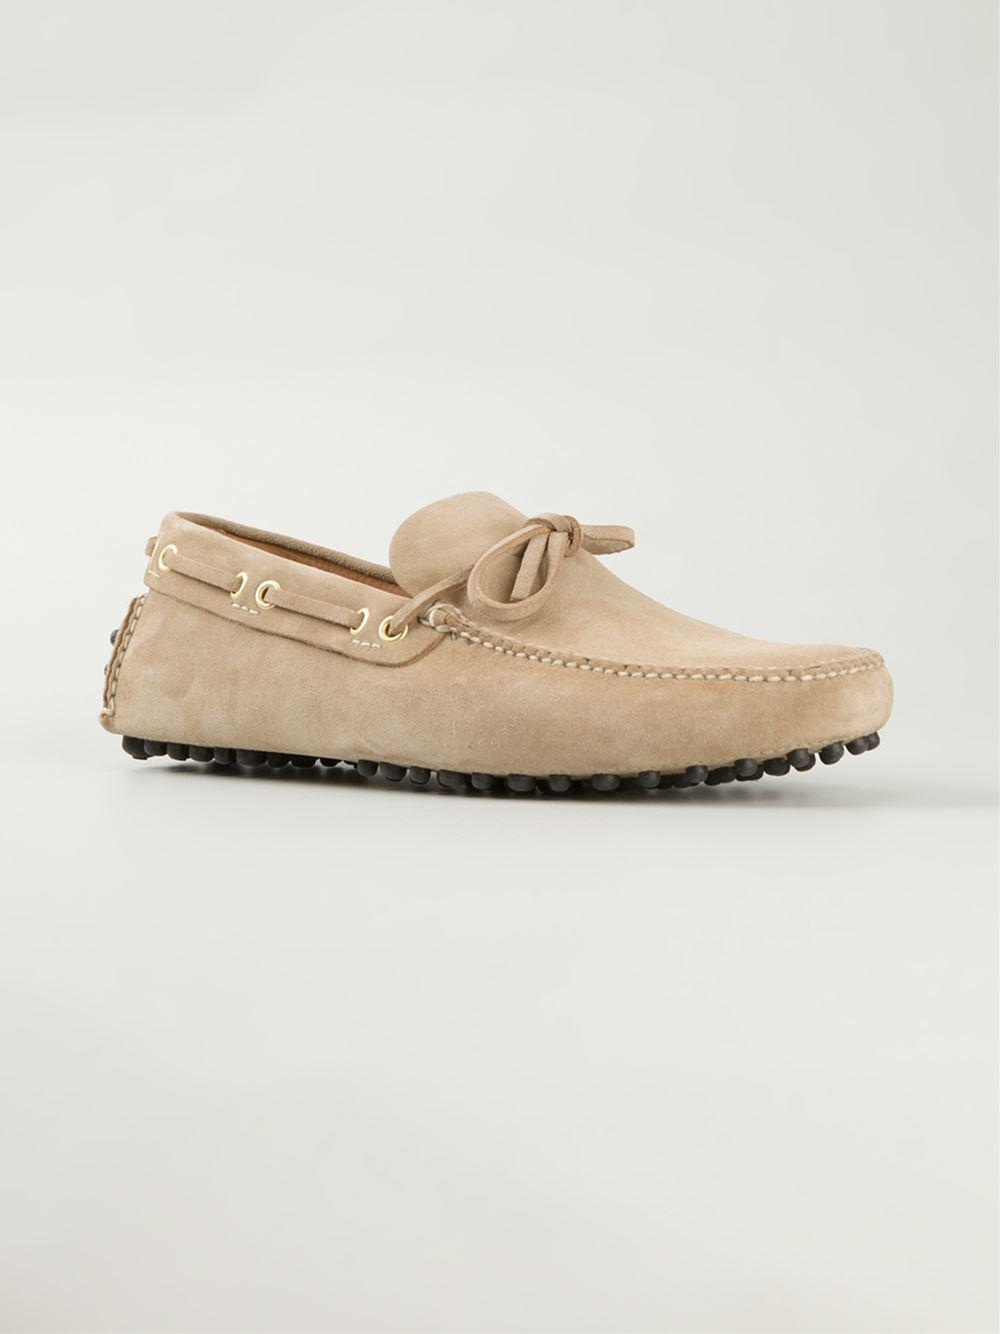 slip-on driving loafers - Nude & Neutrals Car Shoe Cheap Sale Pay With Paypal How Much For Sale Discount Really Best Store To Get Cheap Online Clearance Online Amazon MaTwf